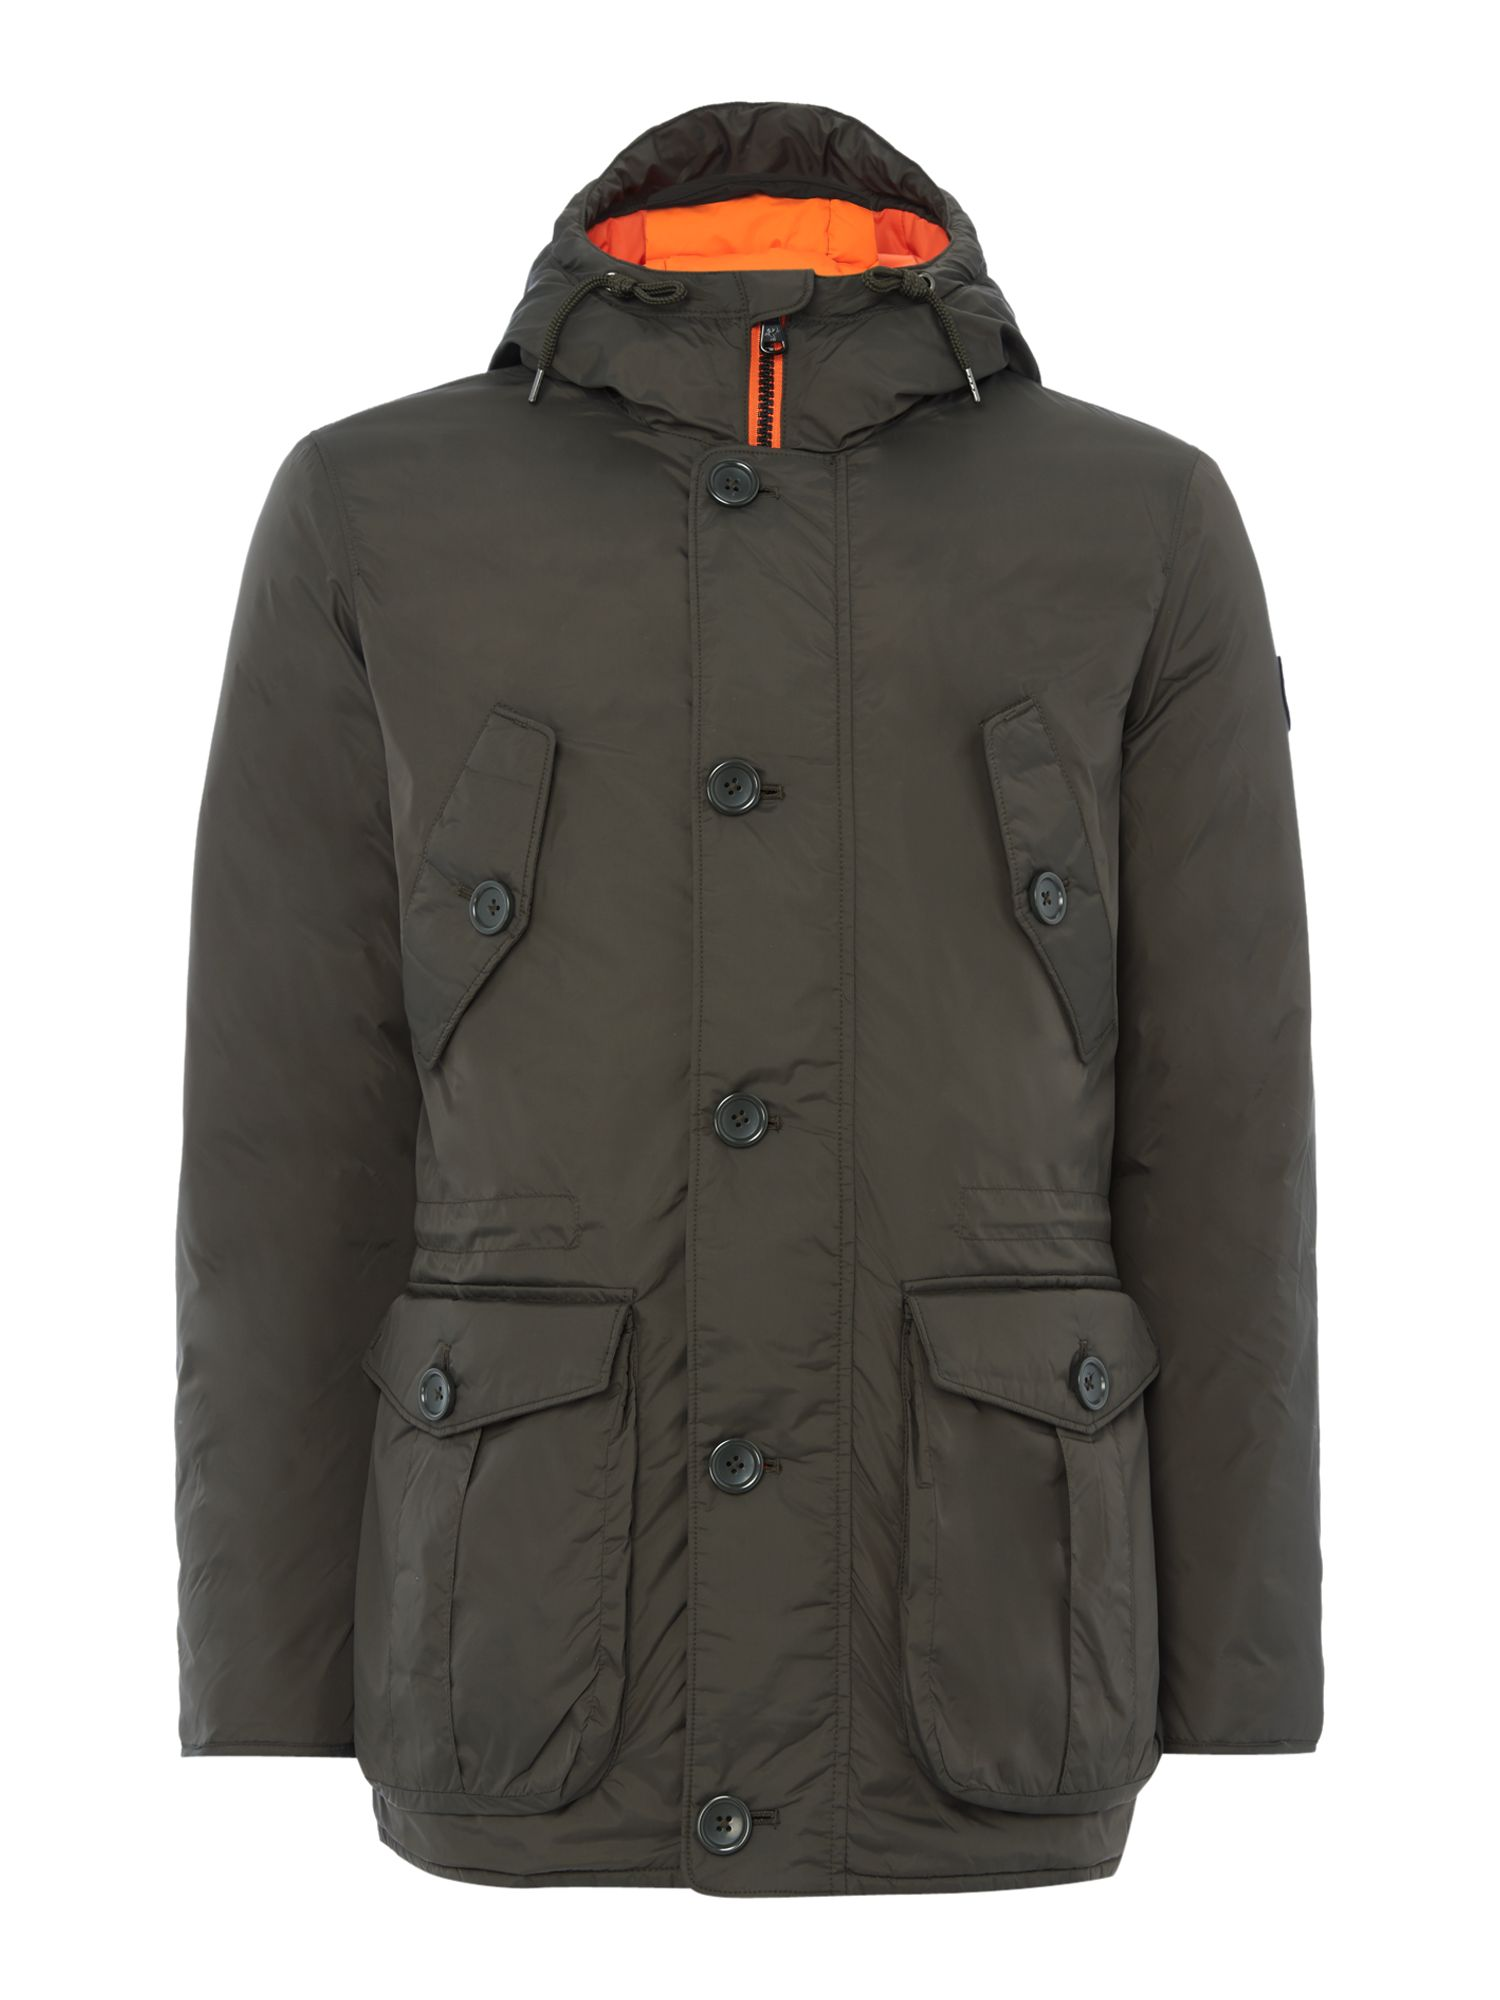 Mens Puffa Minter Padded Parka Jacket Olive